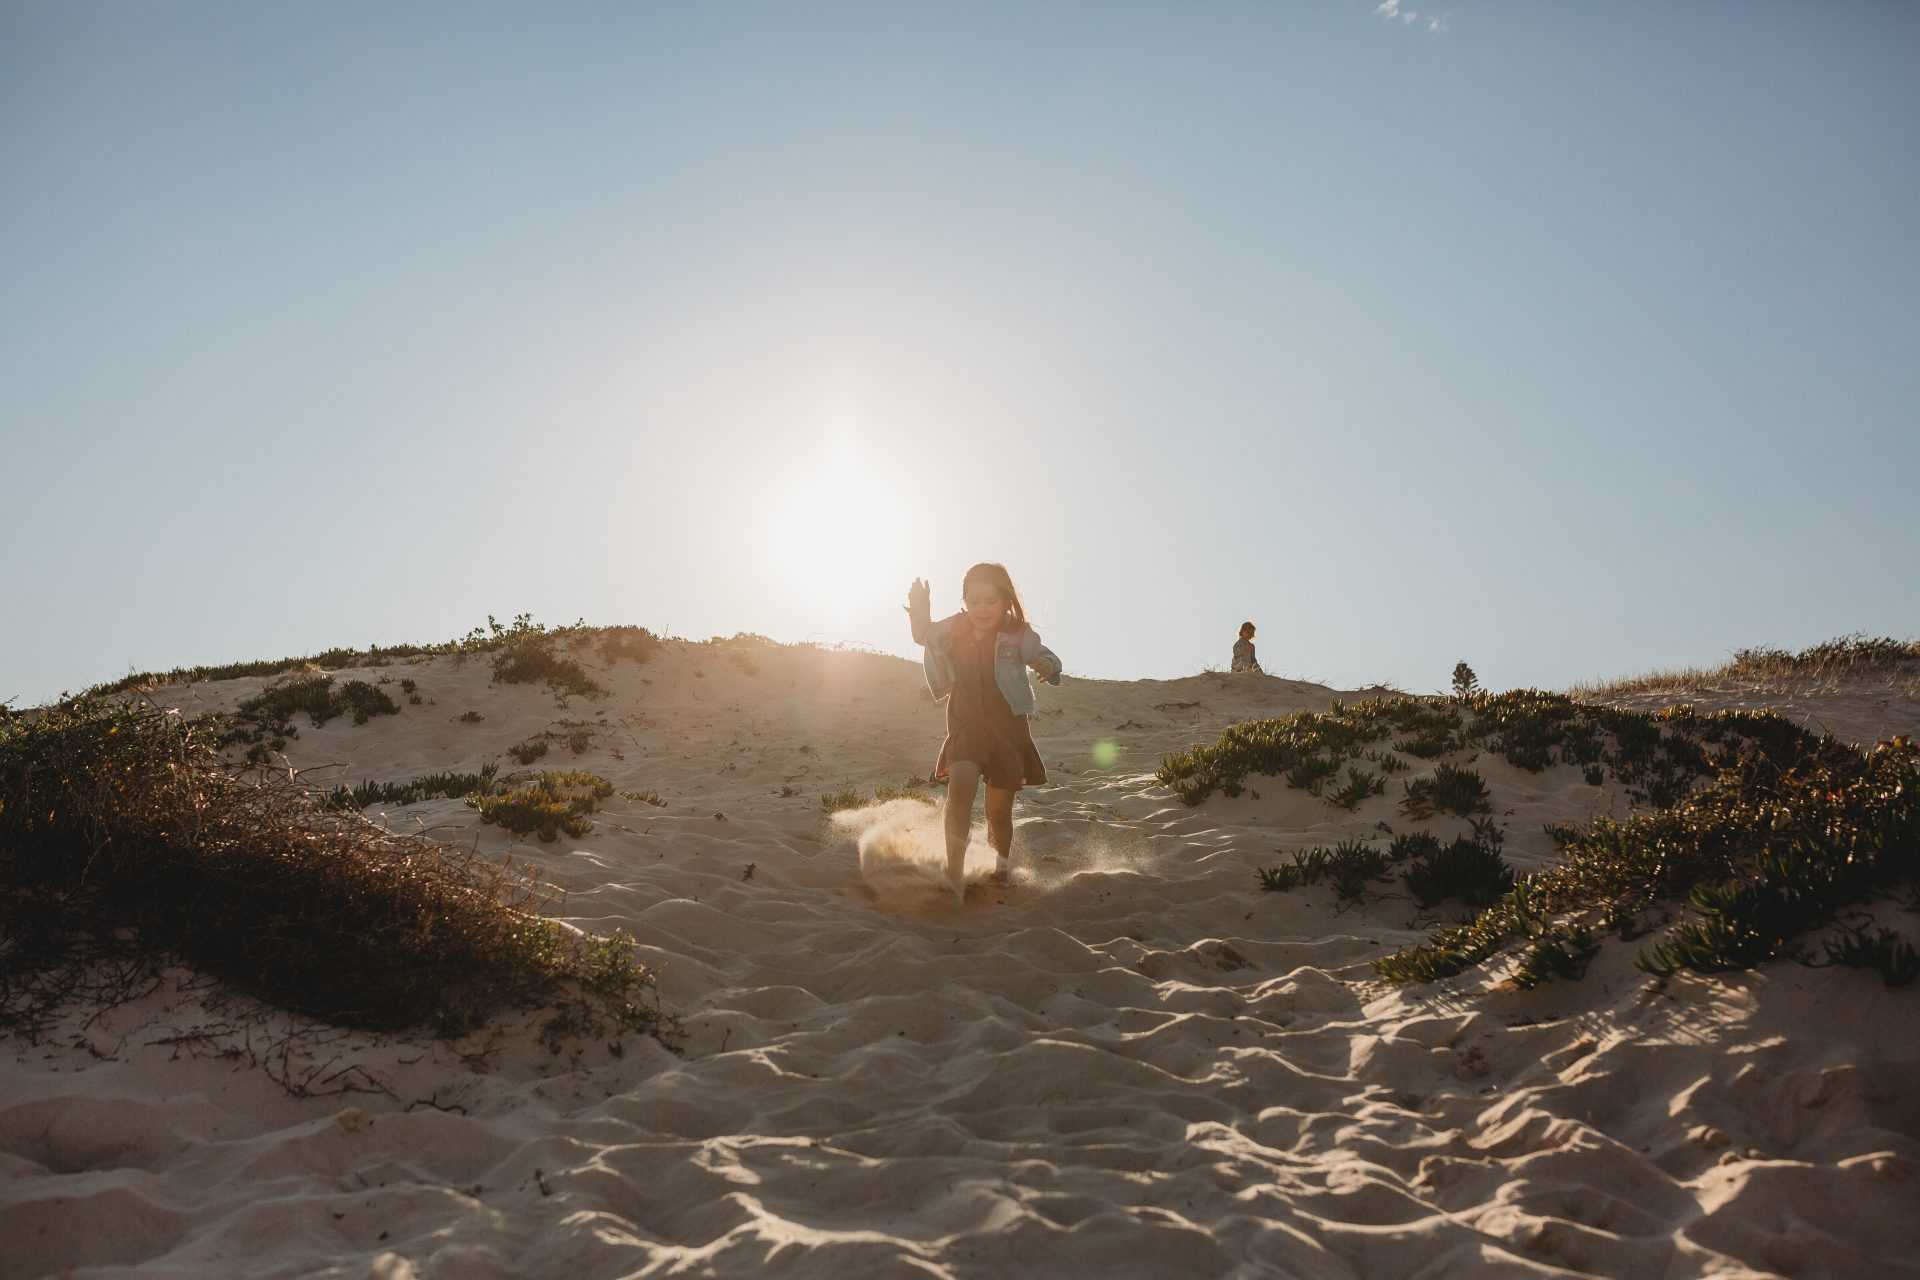 Young girl running down a sand dune towards the camera